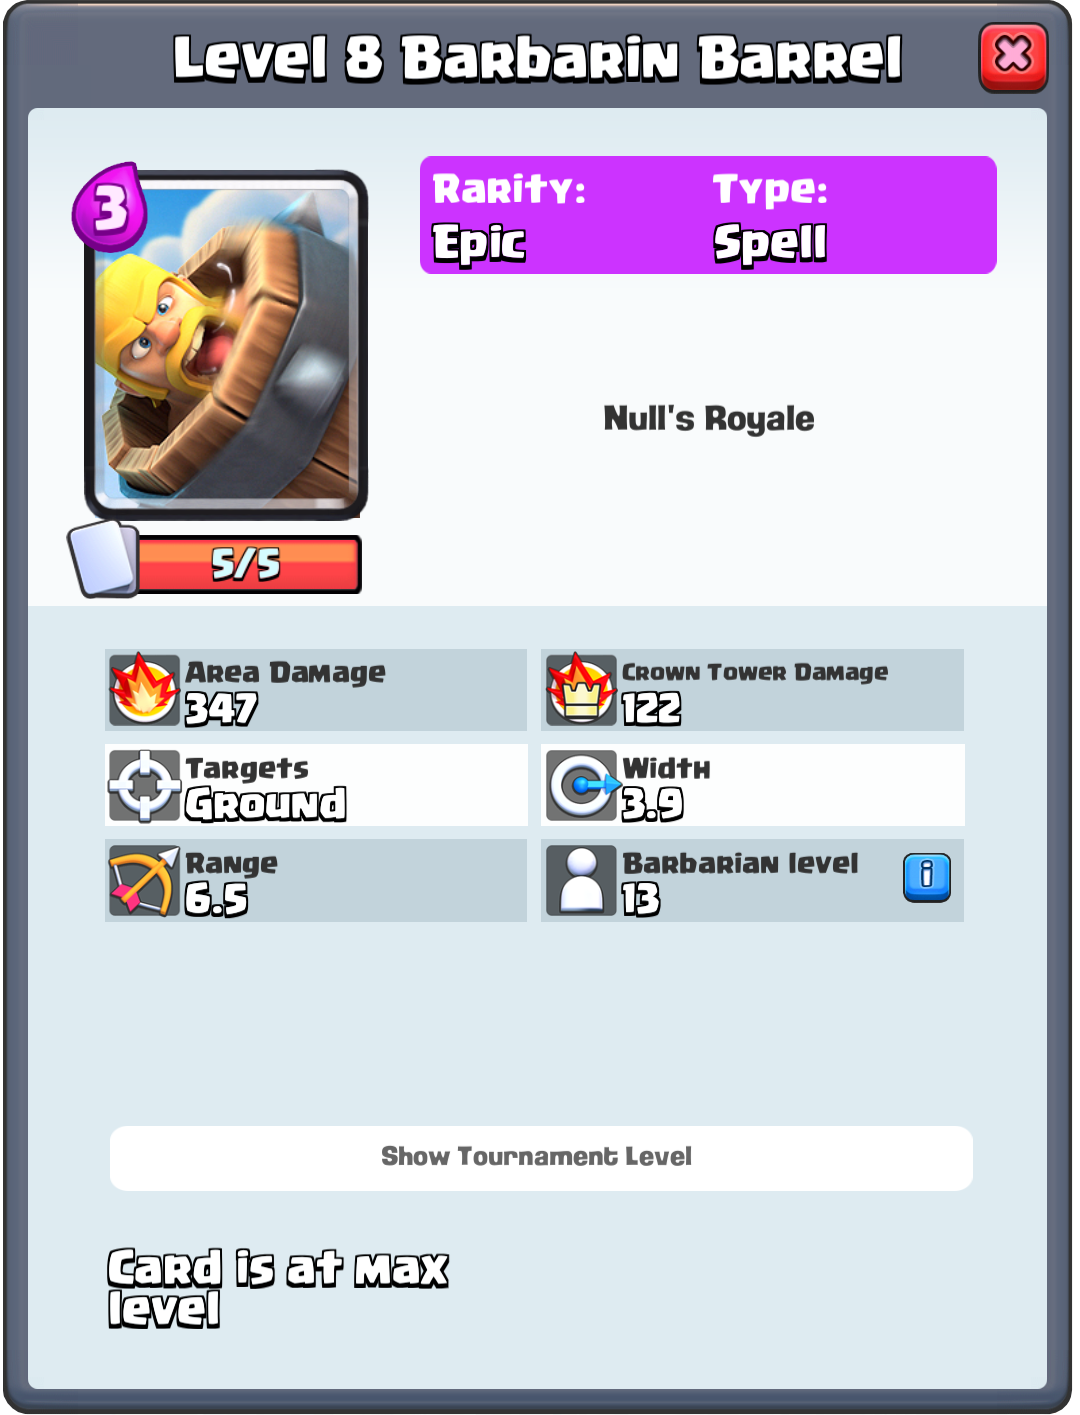 Barbarian Barrel info - Nulls Royale